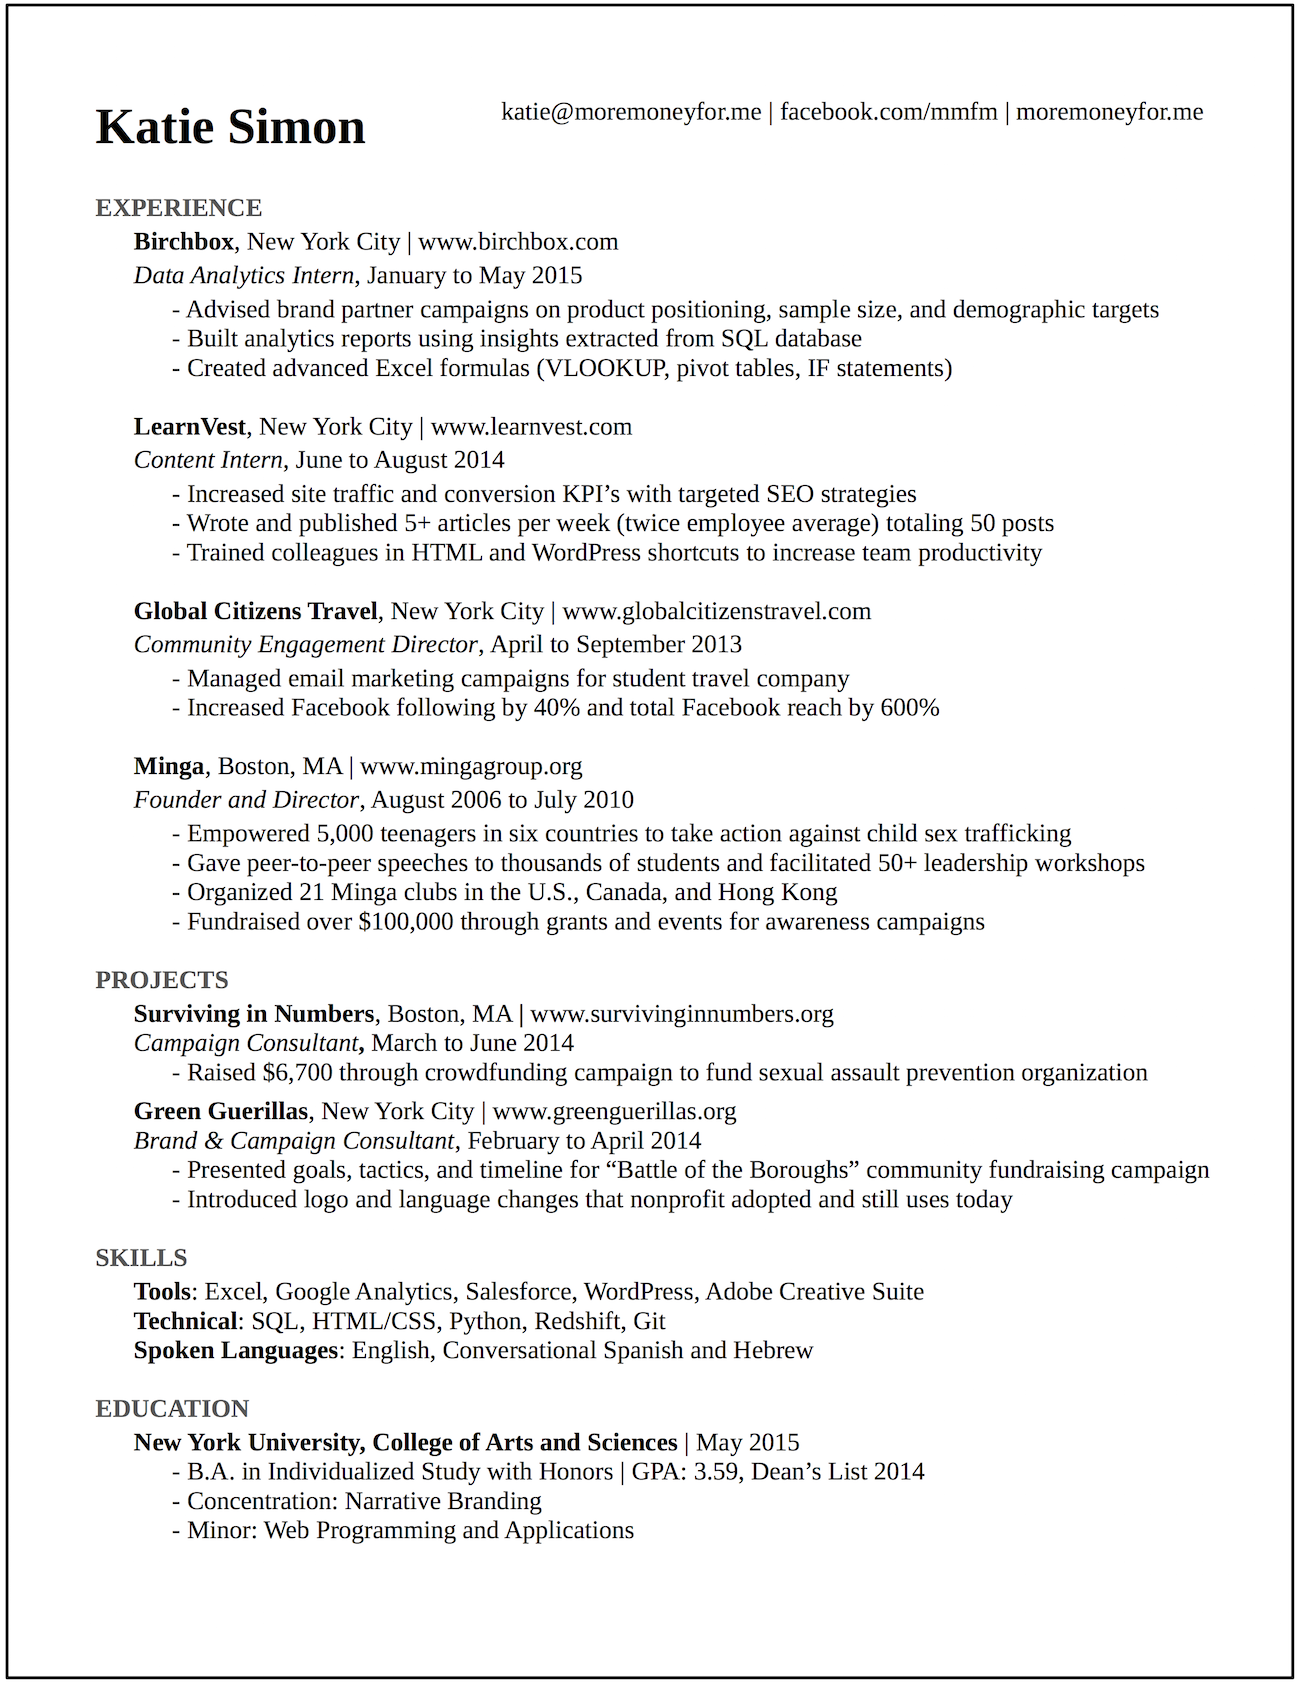 This Resume Landed Me Interviews At Google Buzzfeed And More Than